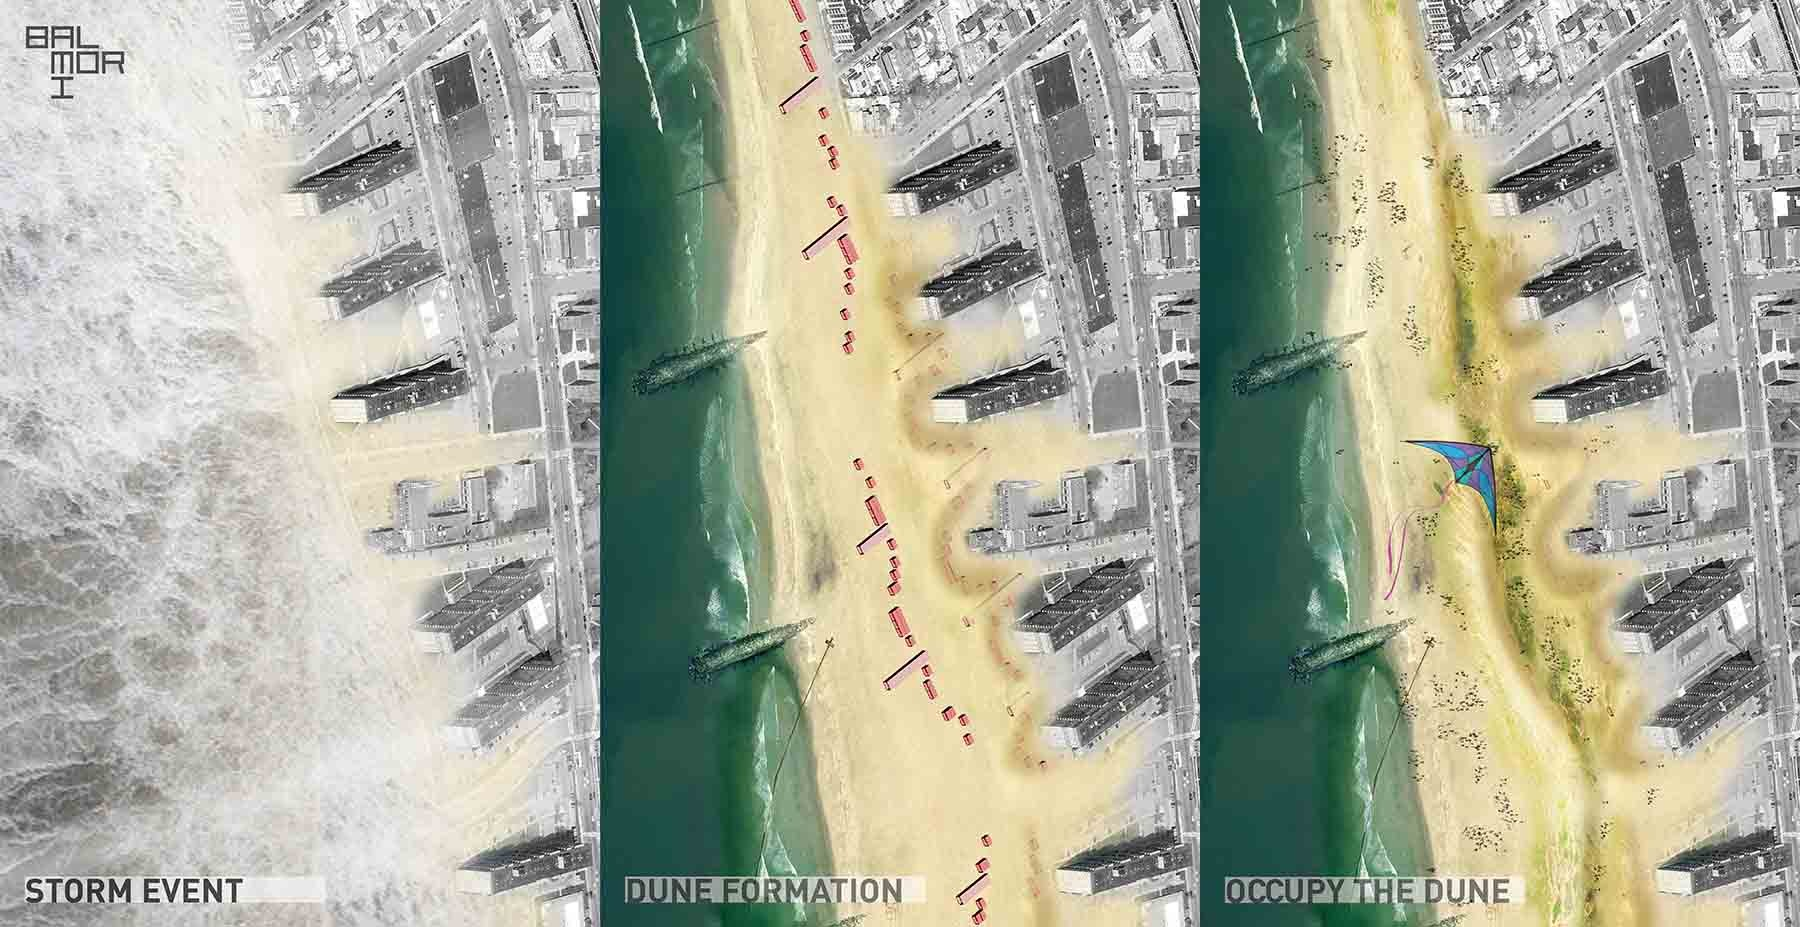 'Occupy the Dune': MOMA PS1 Rockaway Call for Ideas Winning Proposal / Balmori Associates